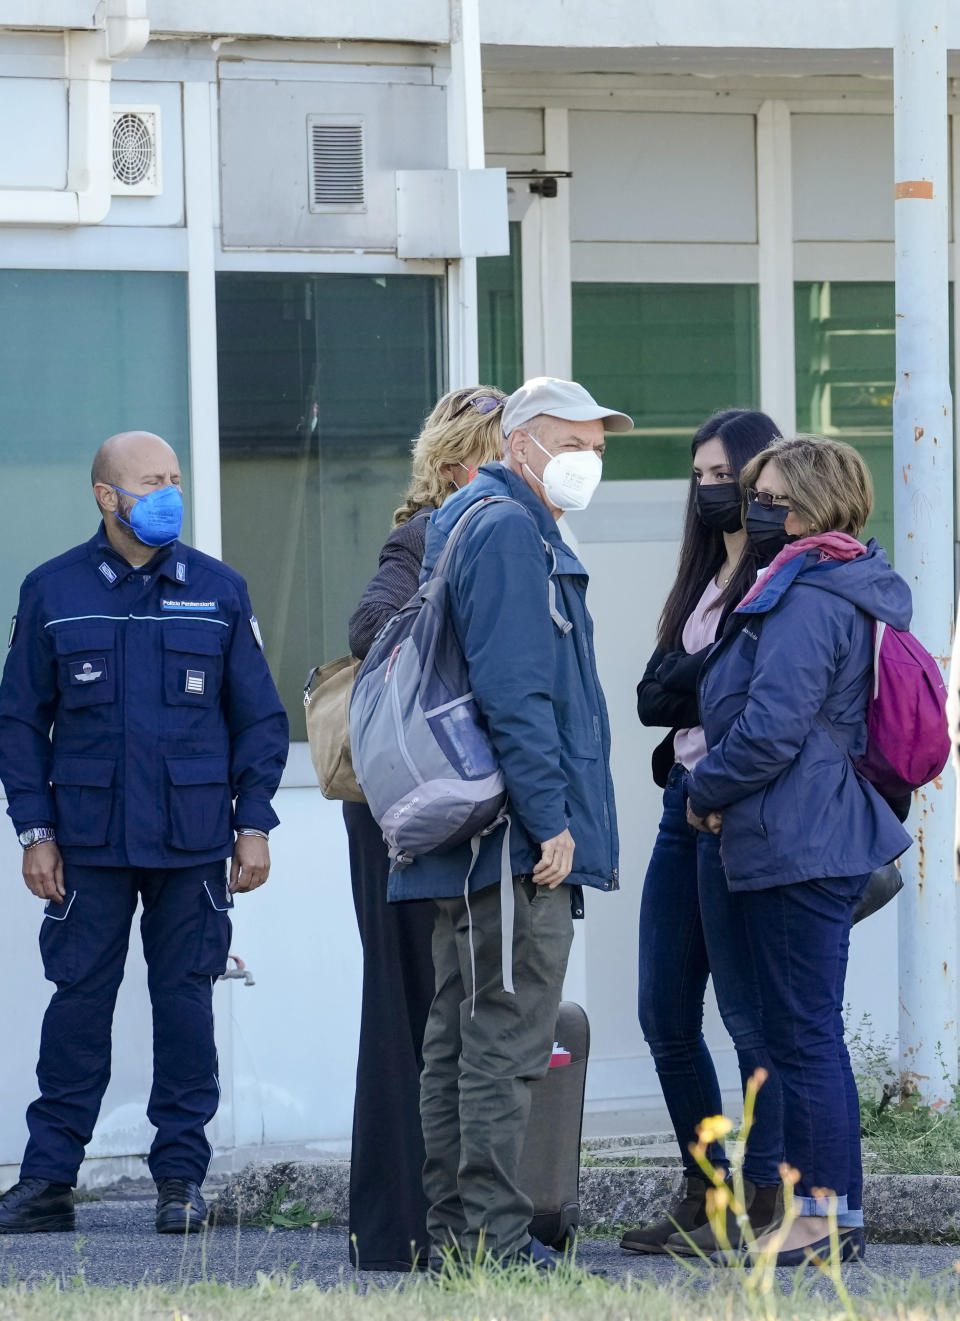 The family of slain Italian doctoral student Giulio Regeni, from right, mother Paola Regeni, Giulio's sister Irene, and father Claudio arrive with their lawyer Alessandra Ballerini, fourth from right, at the Rebibbia prison in Rome, Thursday, Oct. 14, 2021, to attend the first hearing of the trial for the death of Italian doctoral student Giulio Regeni, who disappeared for several days in January 2016 before his body was found on a desert highway north of the Egyptian capital. Italian prosecutors have formally put four high-ranking members of Egypt's security forces under investigation for their alleged roles in the slaying. (AP Photo/Andrew Medichini)